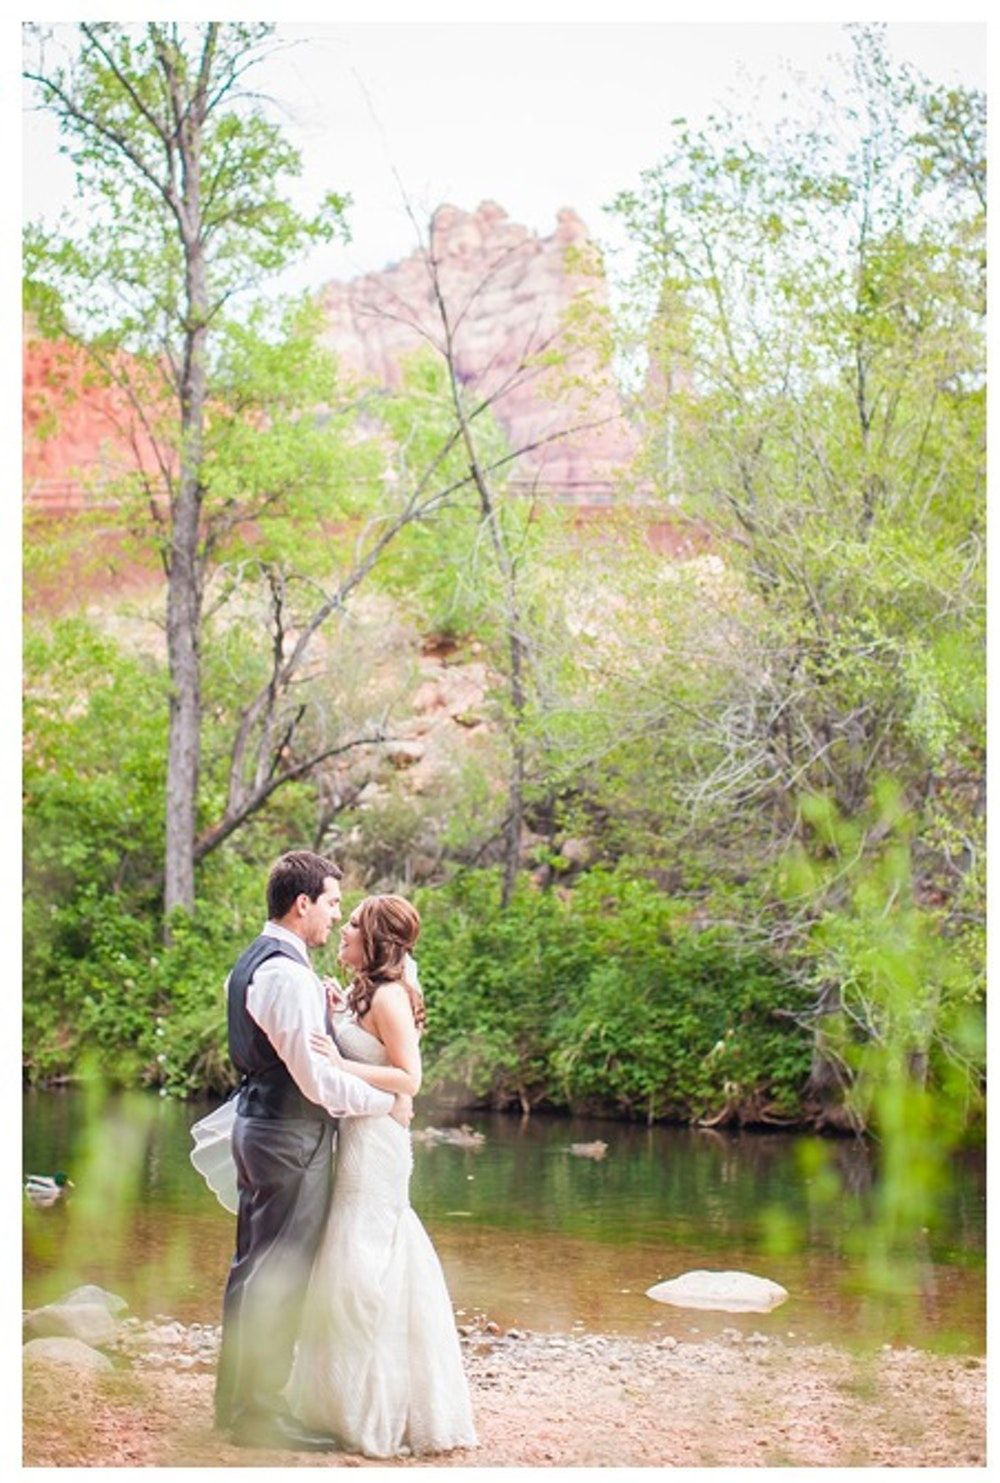 21+ Wedding packages in sedona az information